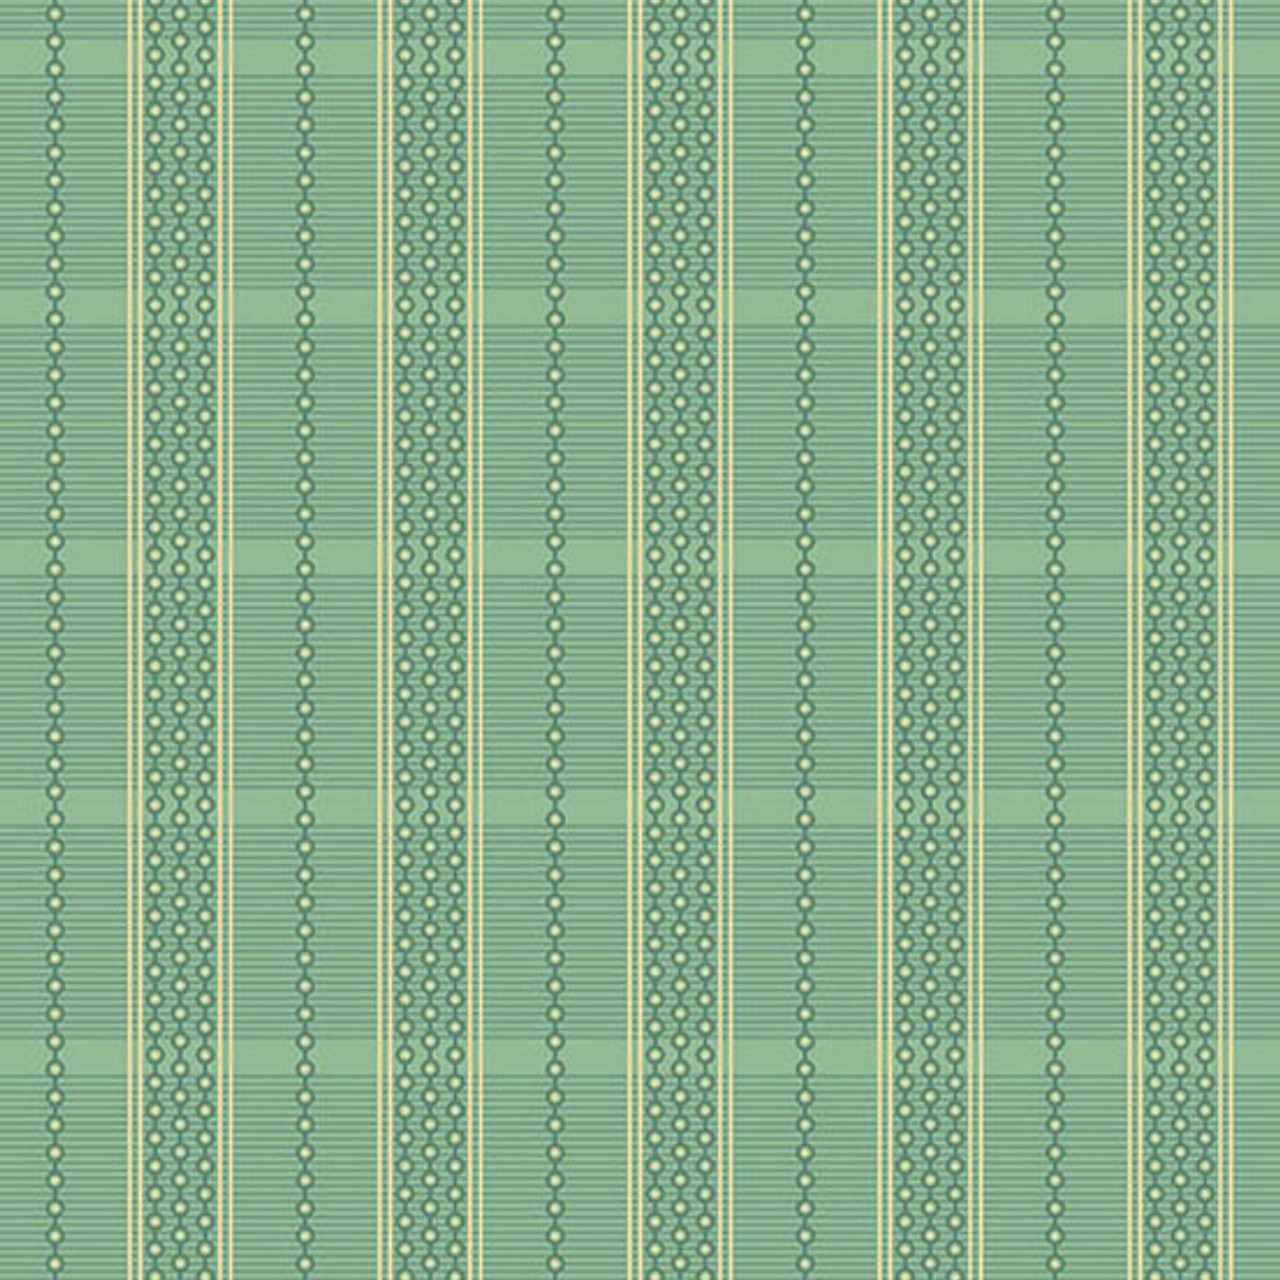 Oak Alley by Di Ford Hall : Fancy Plaid - Turquoise PRE-ORDER ONLY, DUE EARLY 2022